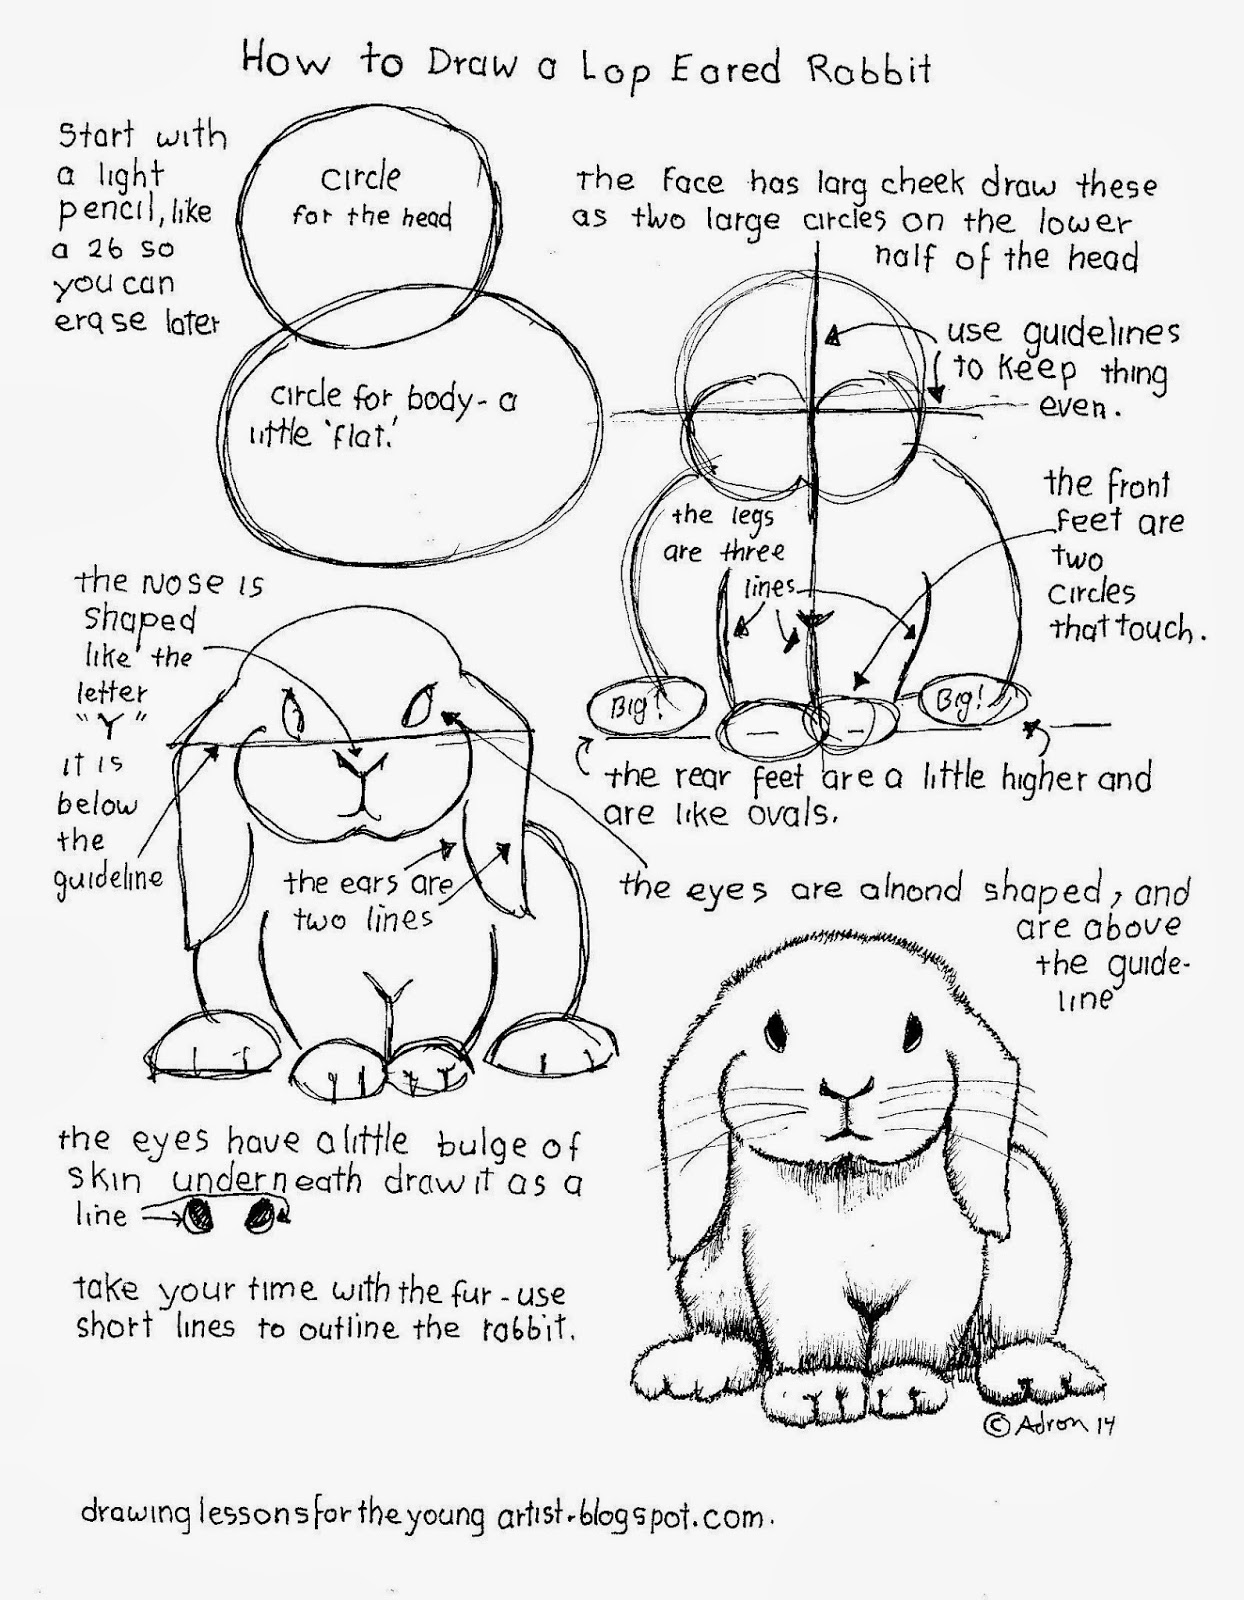 How To Draw Worksheets For The Young Artist How To Draw A Lop Eared Rabbit Free Worksheet